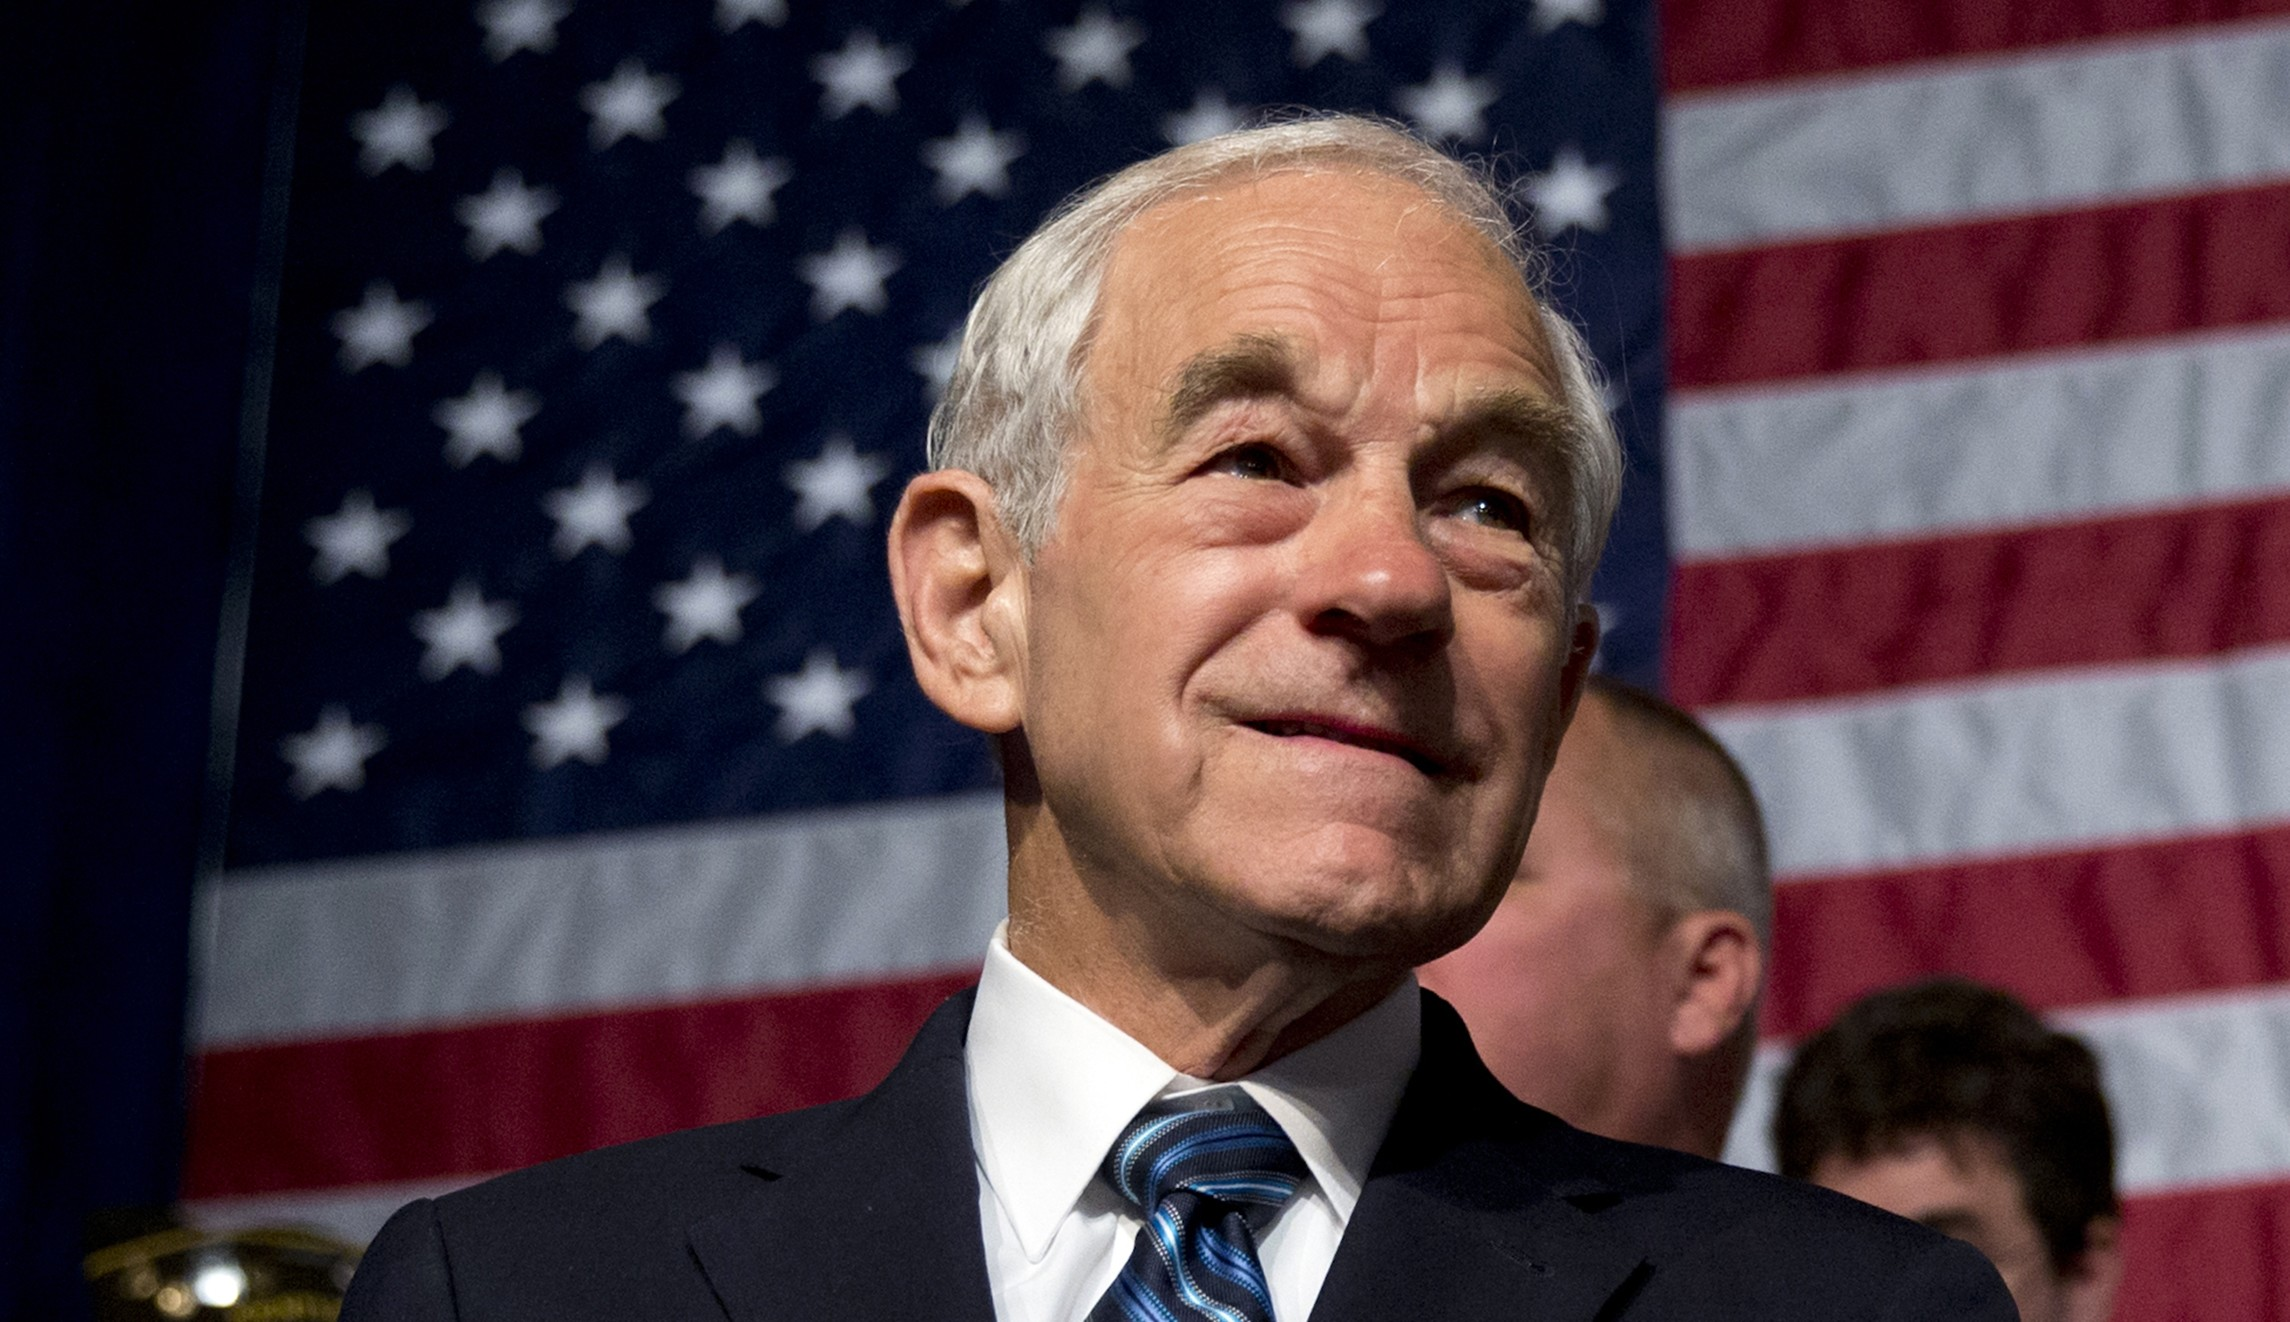 Ron Paul: Cryptocurrencies Are A Great Idea